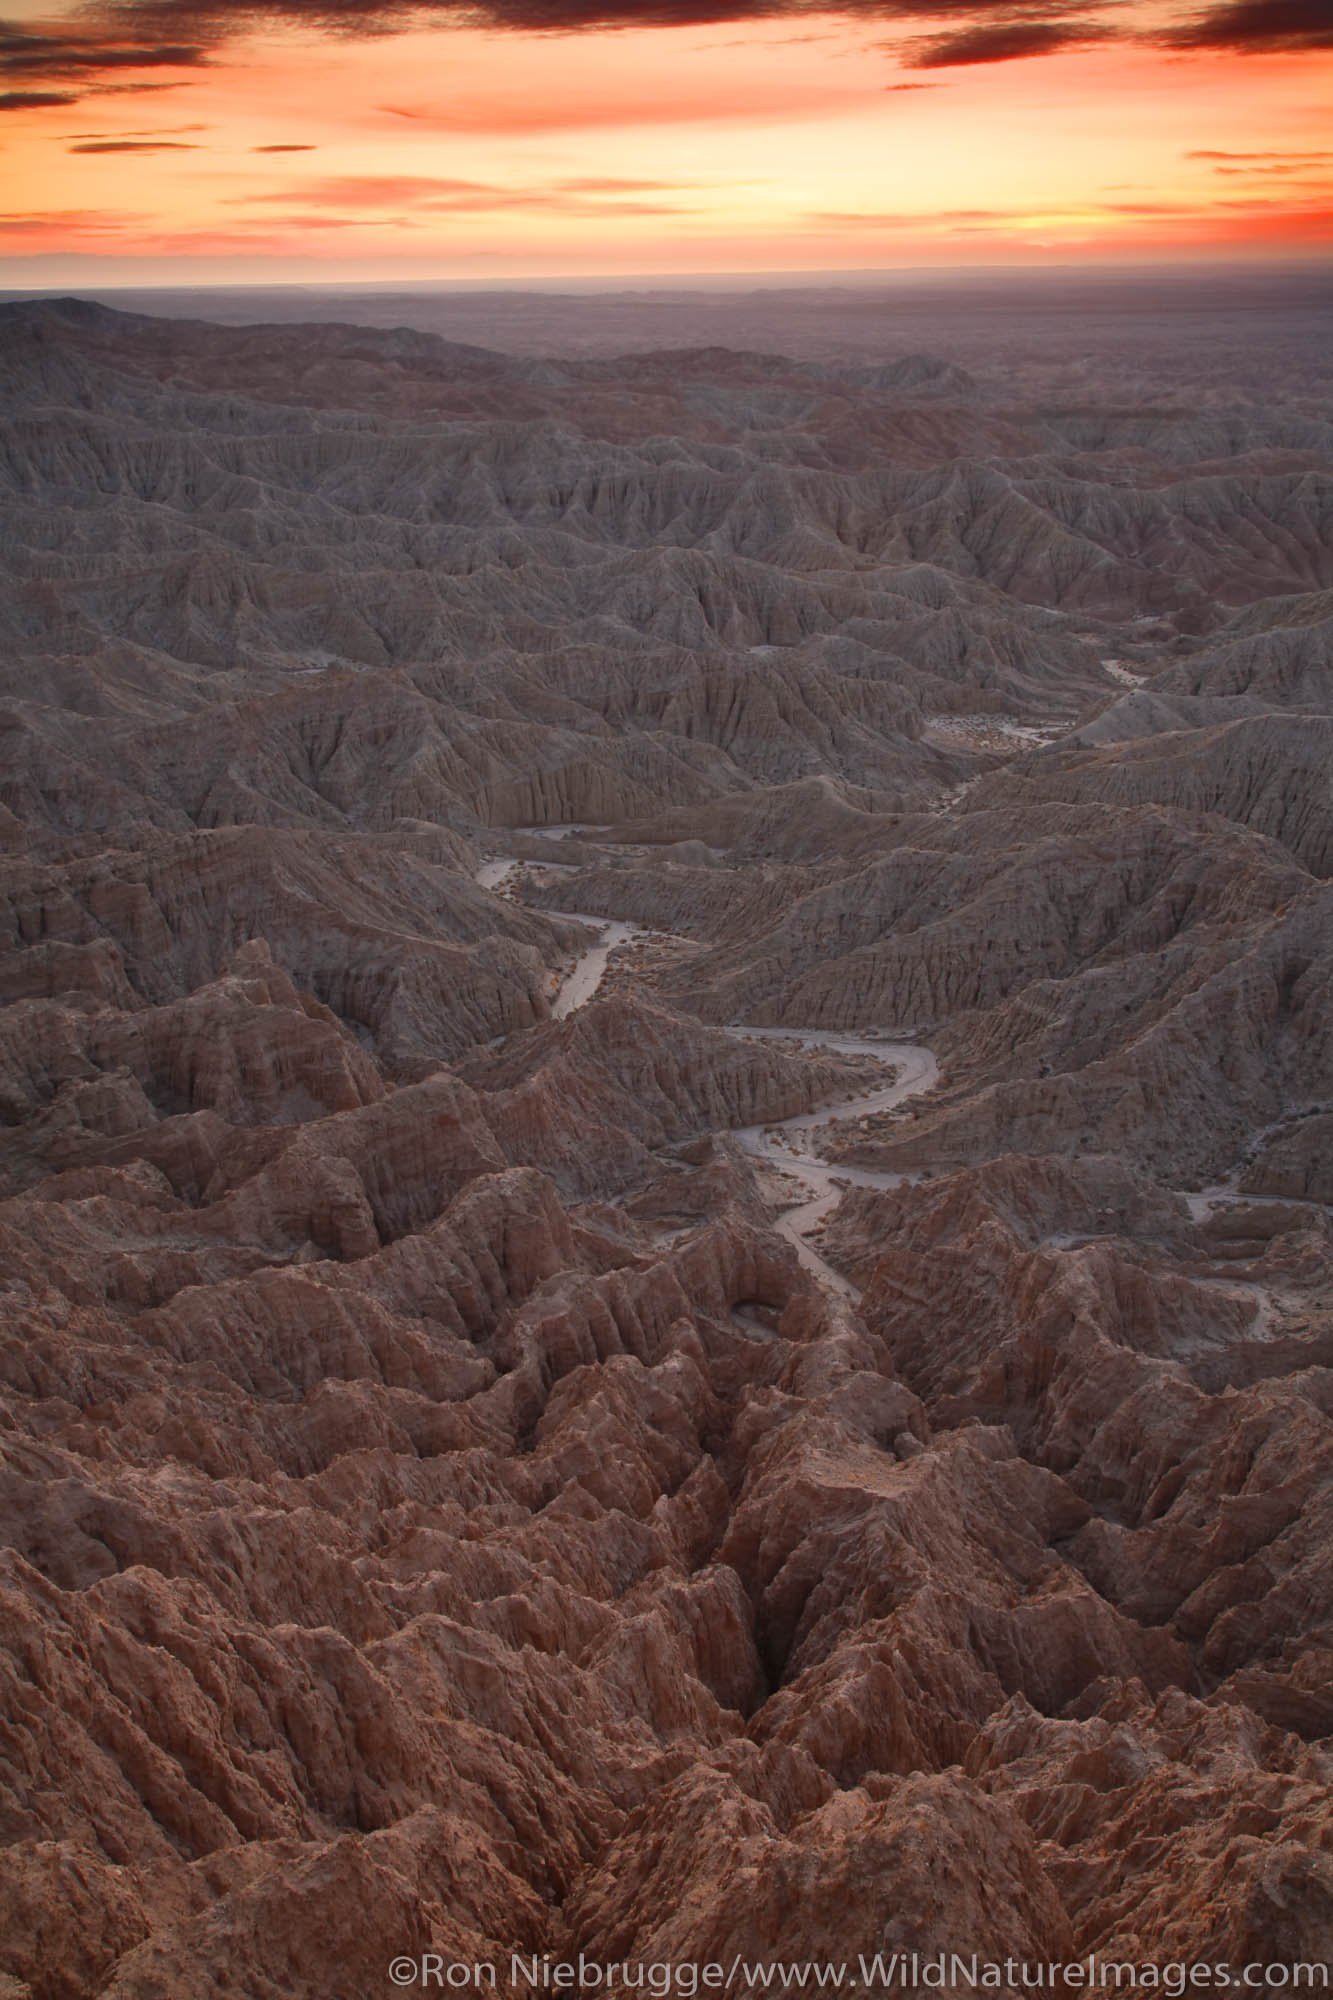 Sunrise of the Badlands from Font's Point, Anza-Borrego Desert State Park, California.